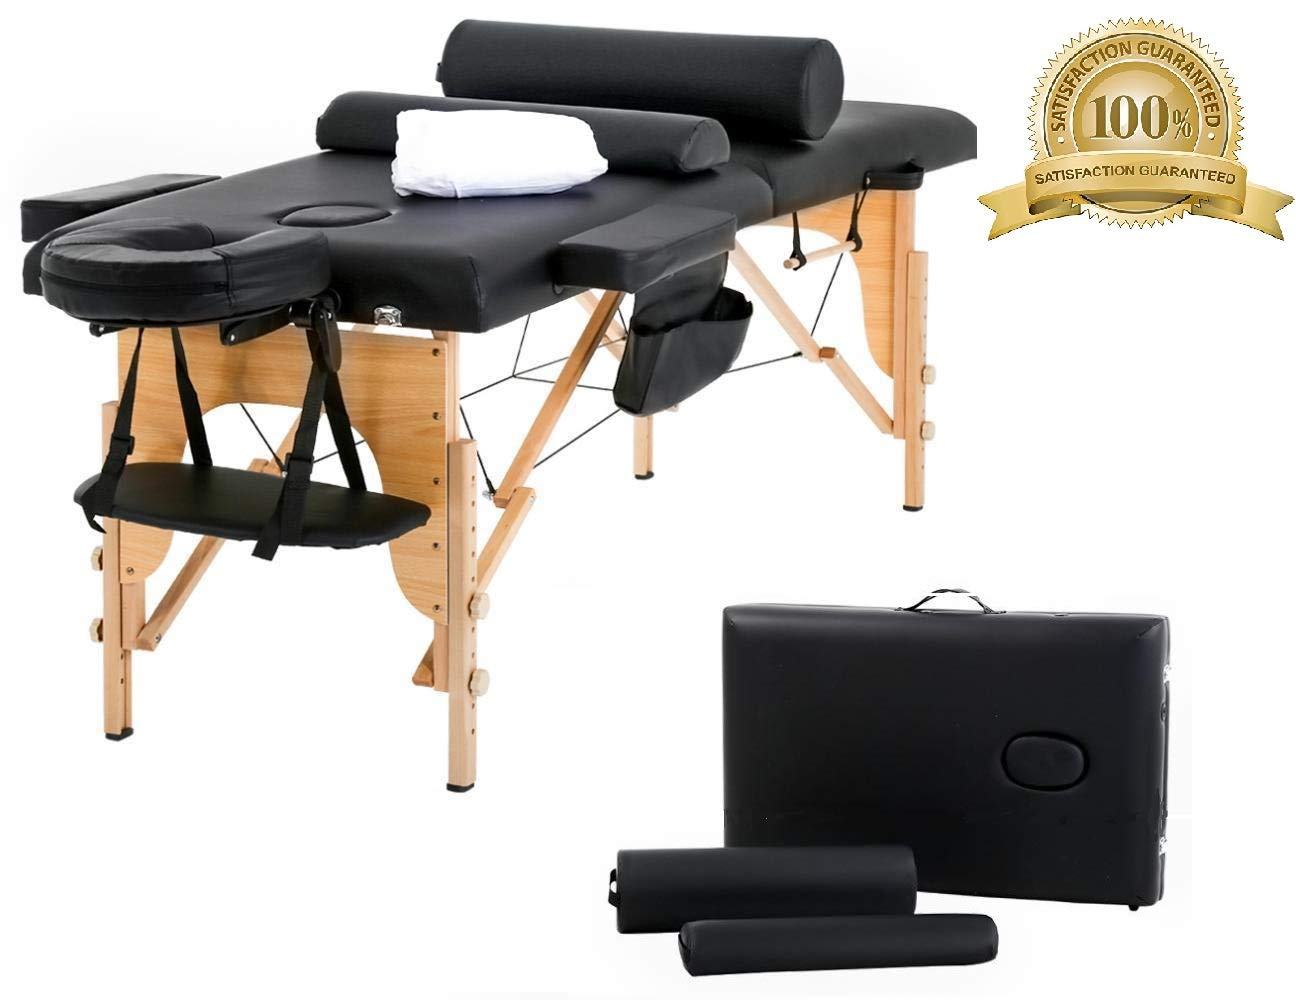 Portable Massage Table Esthetician Chiropractic Table 73''L 2 Fold Face Cradle Arms Adjustable Massage Spa Bed Durable Shiatsu Massager Wood Padded Waterproof Oil Resistant Lash Table w/Carry Case by massagenjoy